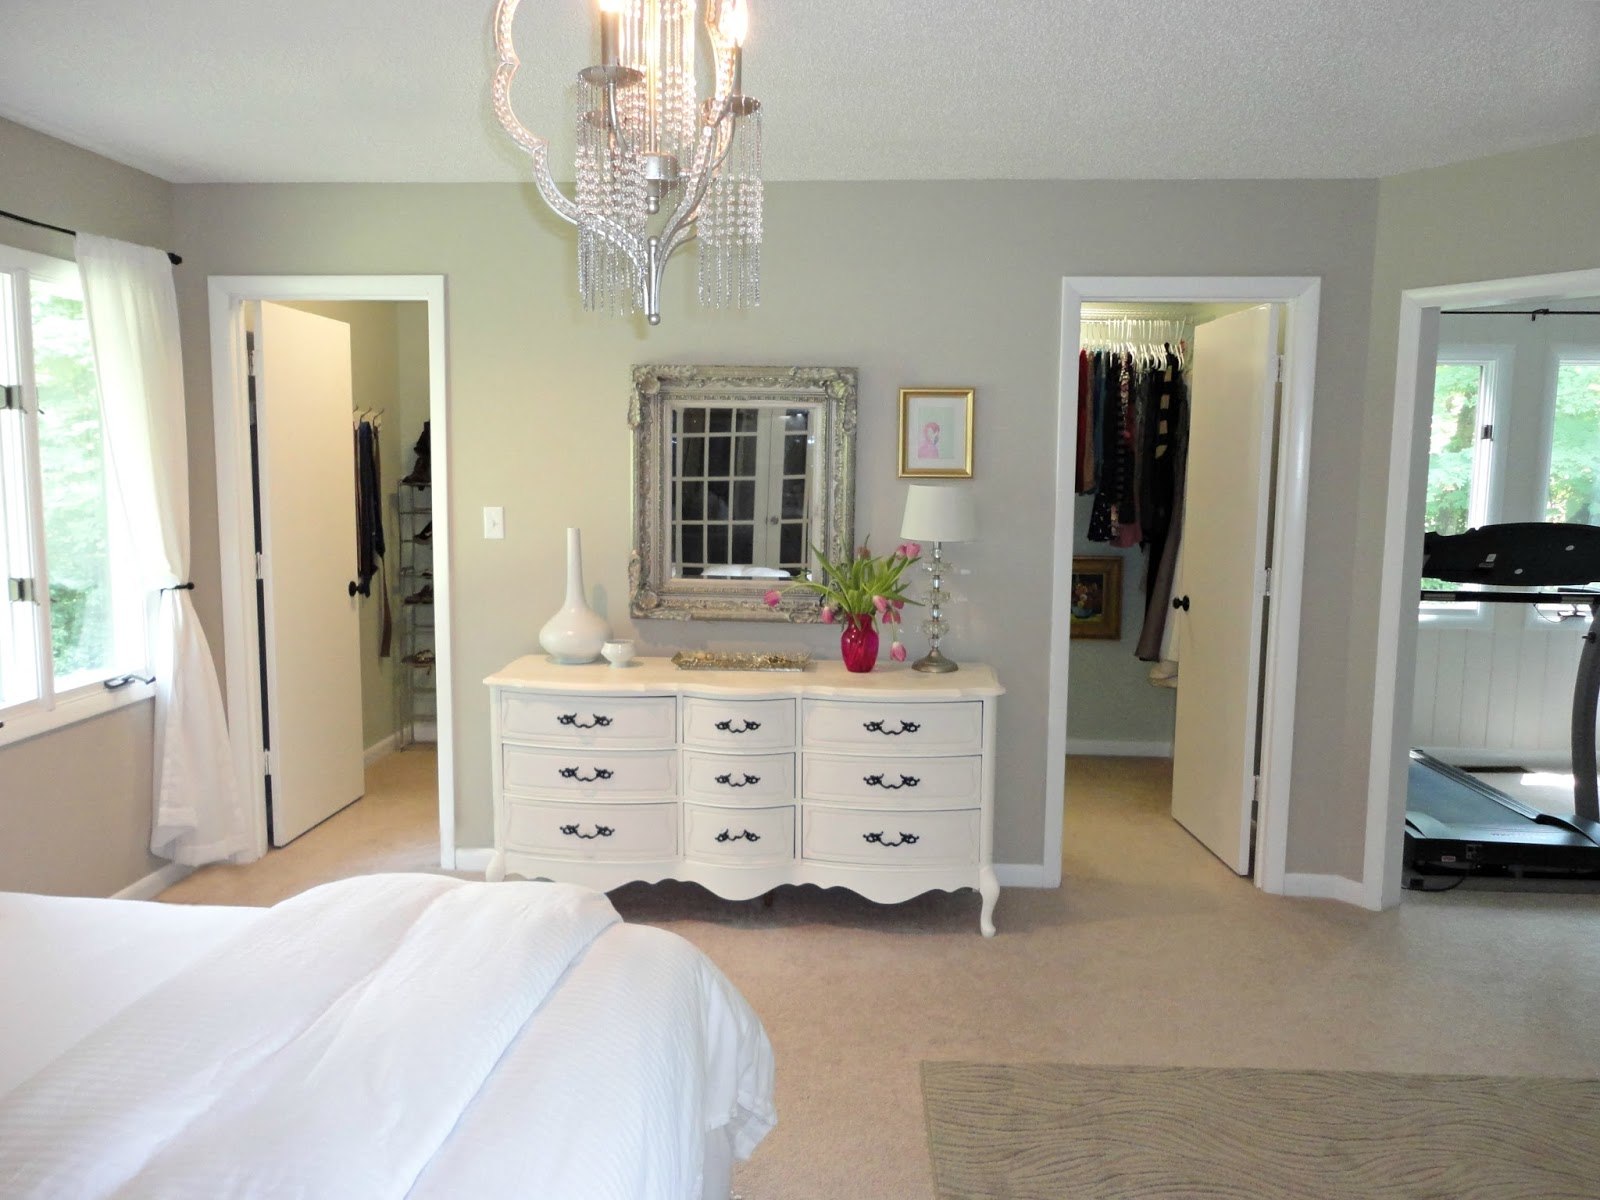 Walk in closet designs for a master bedroom a unique - Master bedroom closet designs and ideas ...